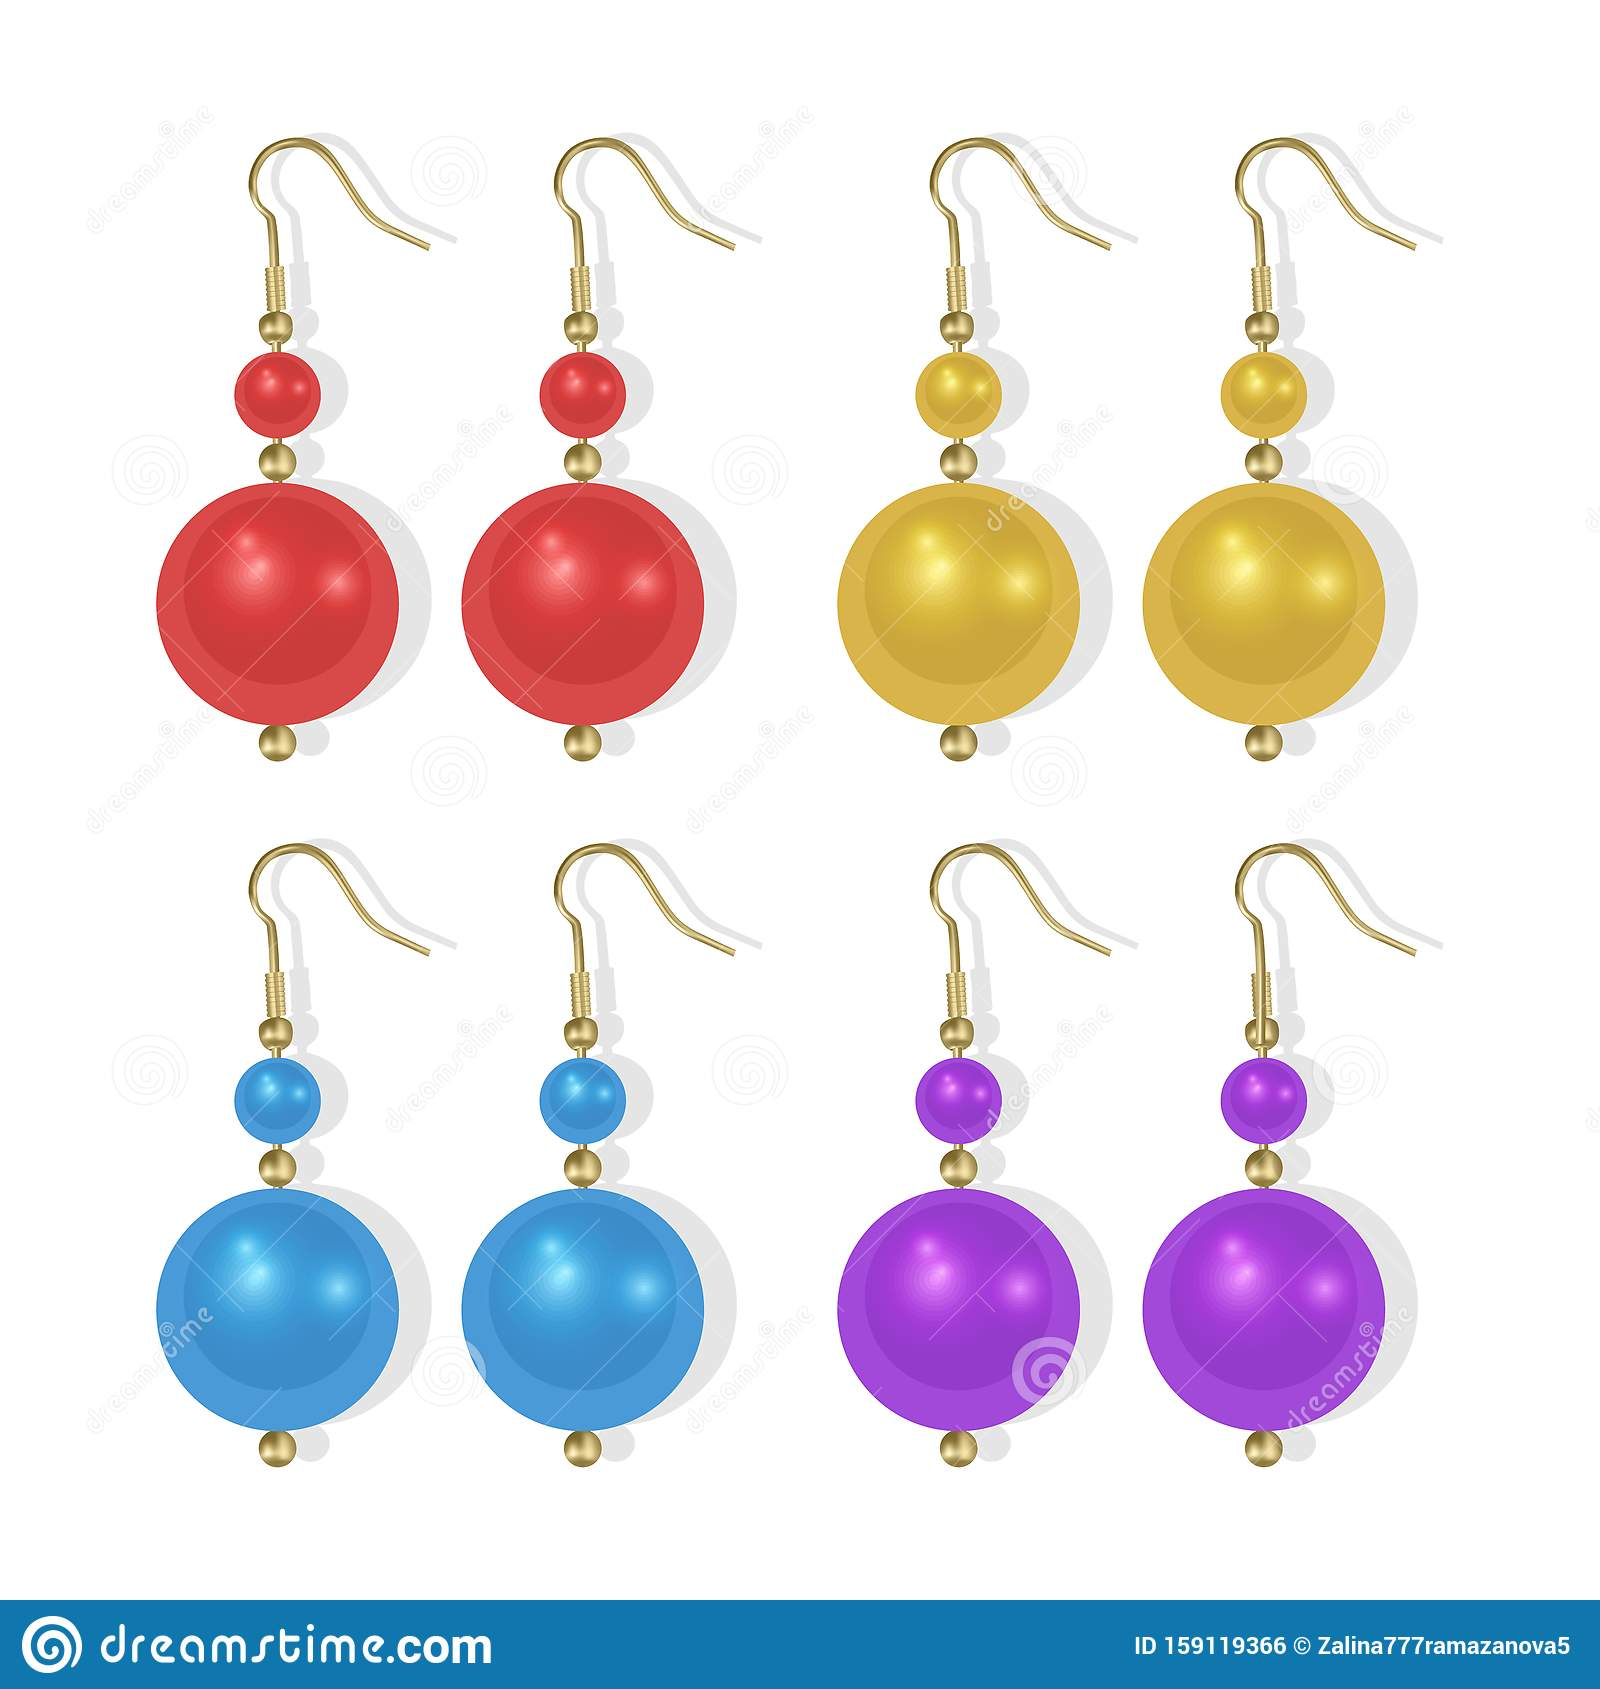 Realistic earrings icons set. Gold jewelry, Pearl earrings of bright colors on white background, Vector EPS 10 illustration